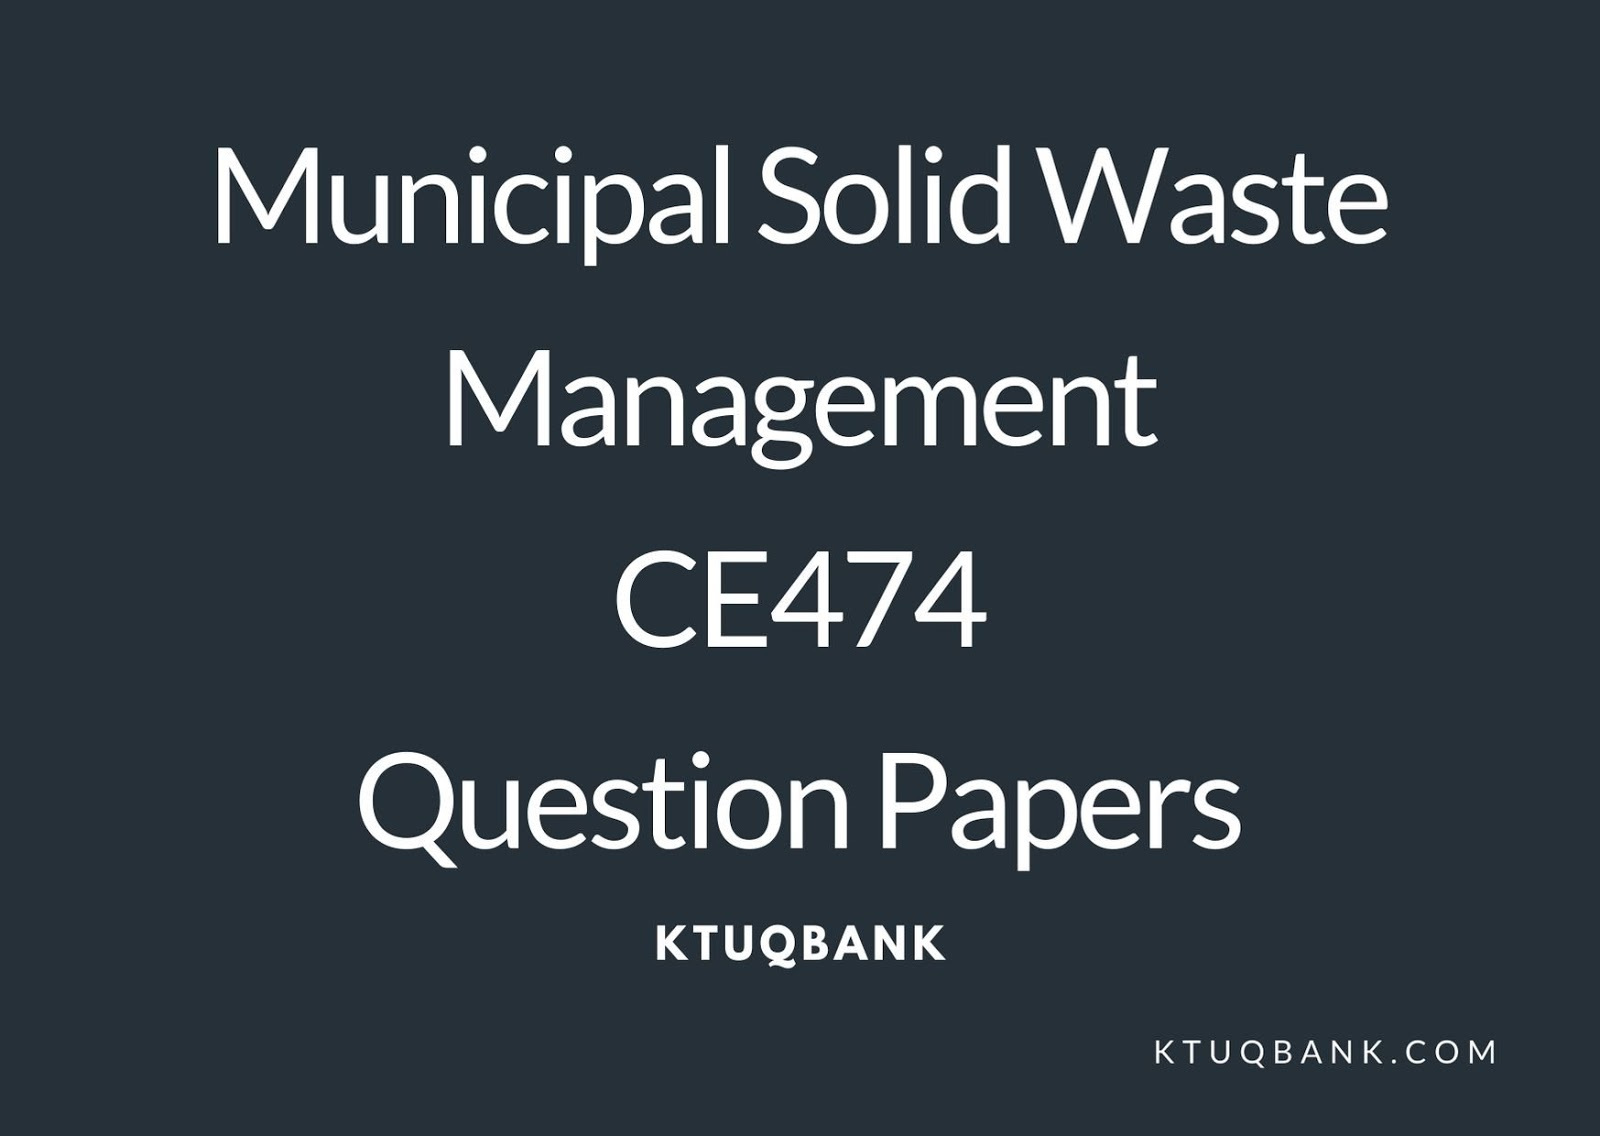 Municipal Solid Waste Management | CE474 | Question Papers (2015 batch)